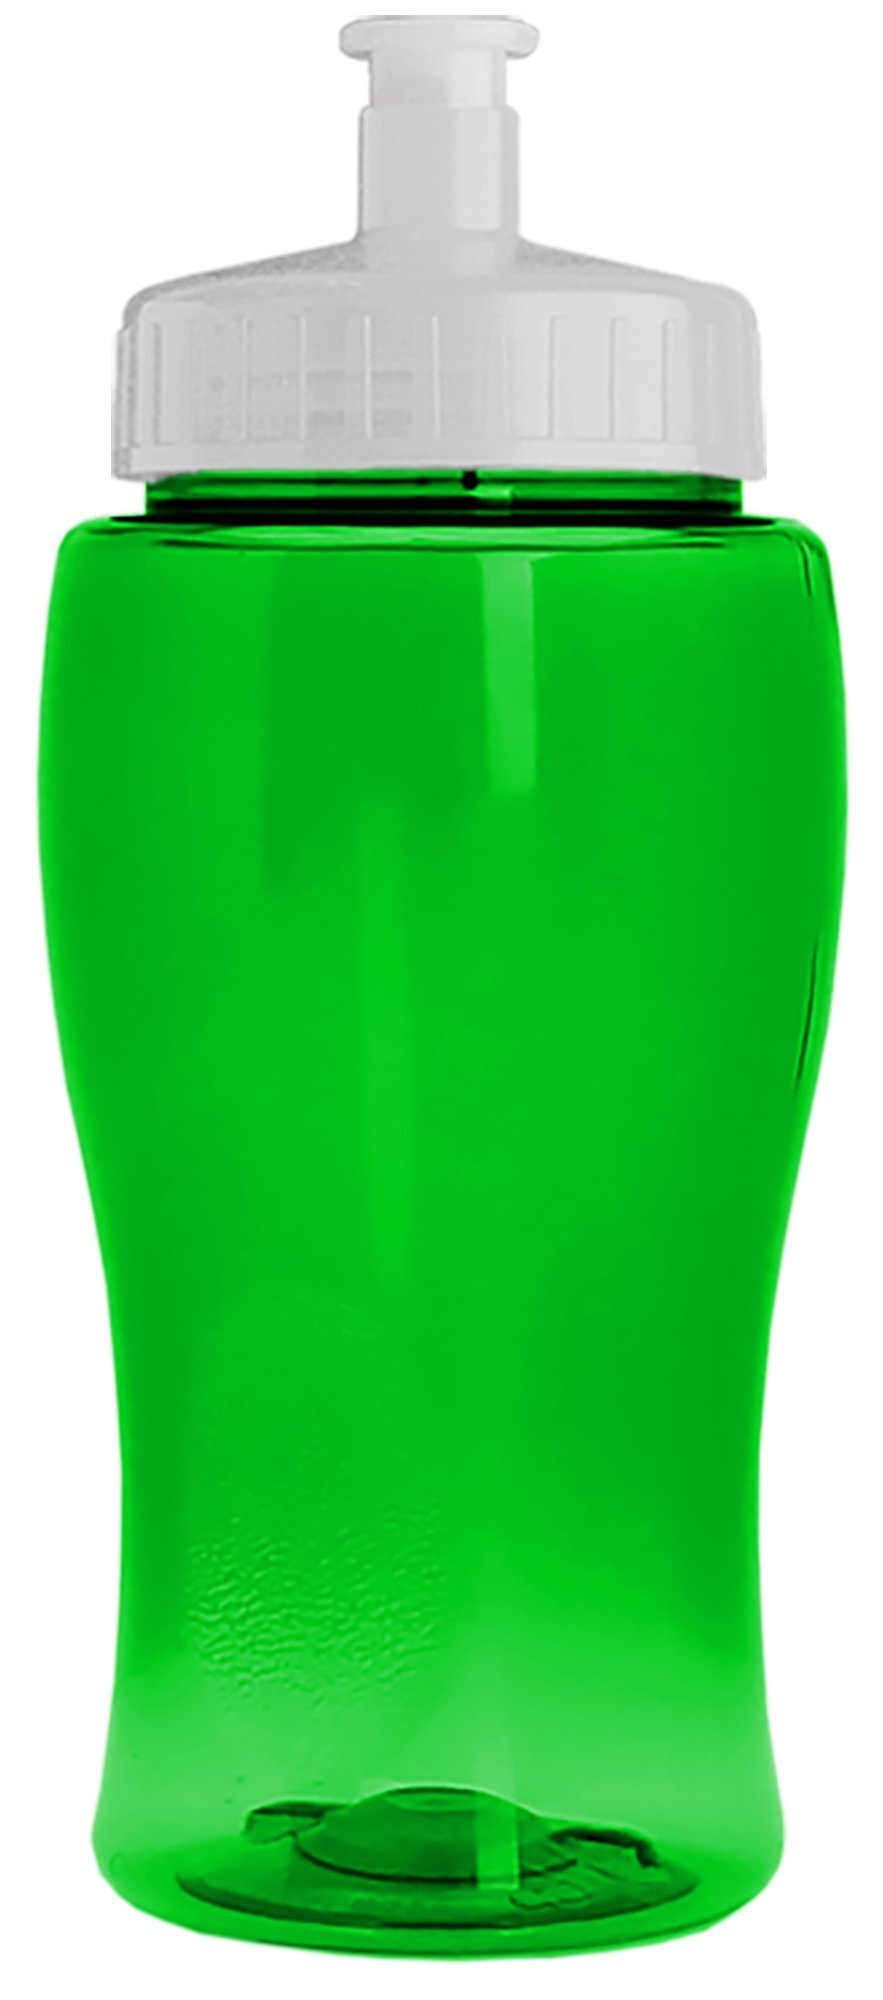 Mini Transparent Sports Bottle, 18oz. - Push Pull Lid